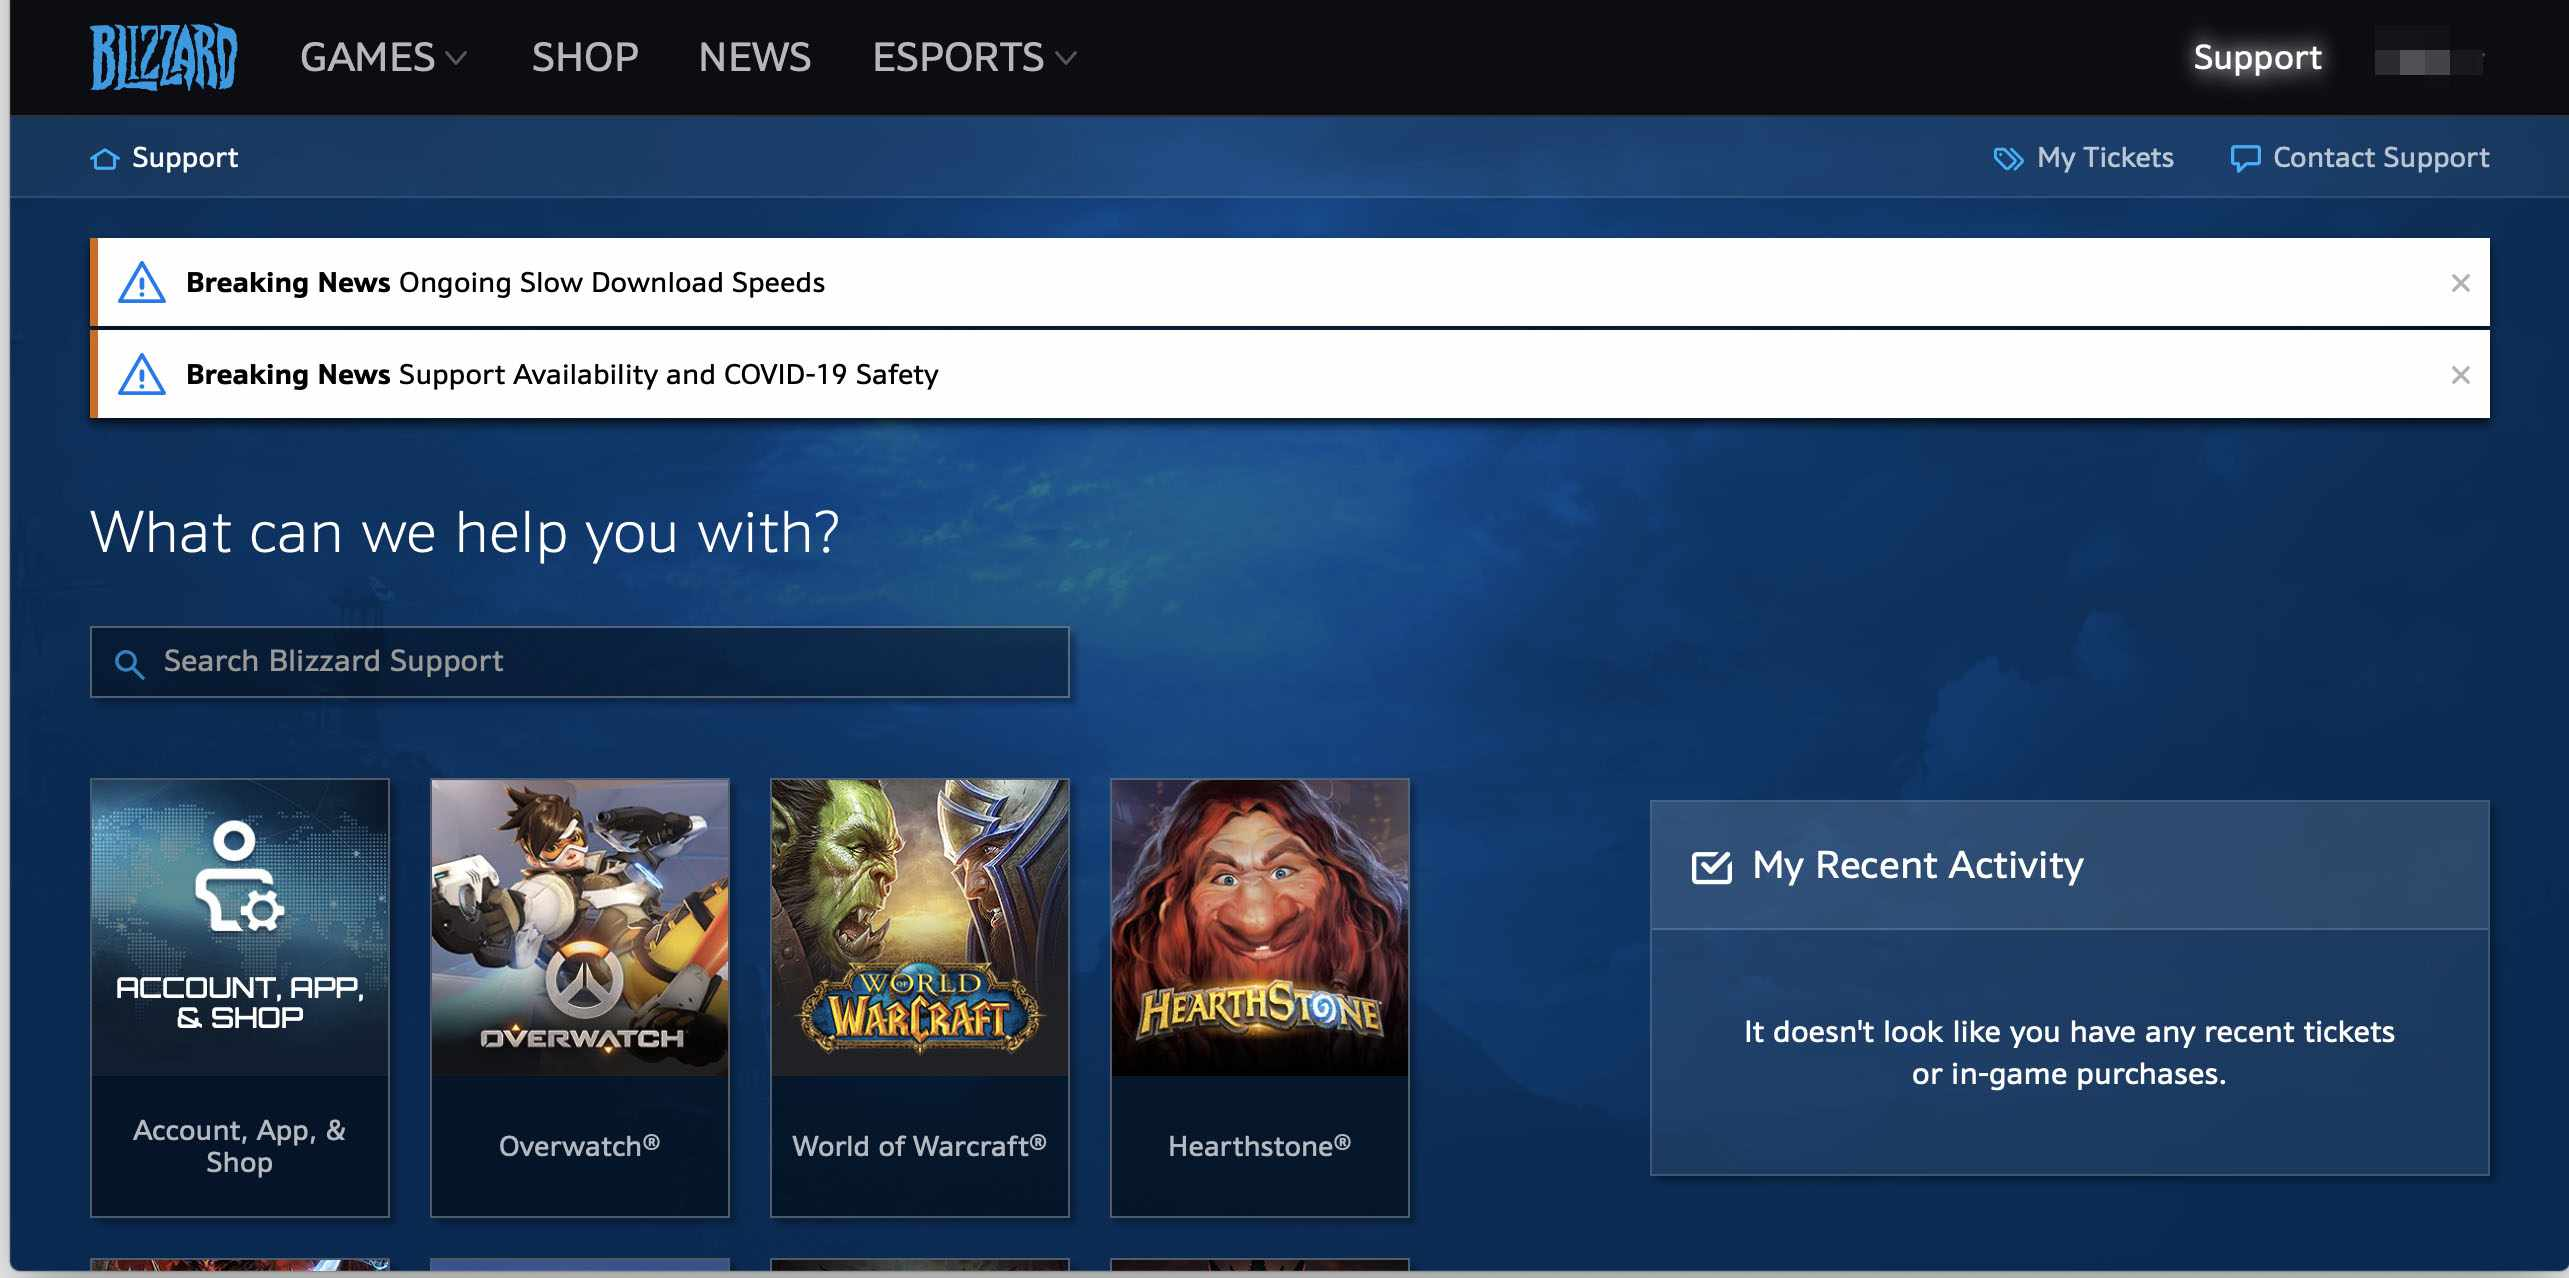 Battle.net support page